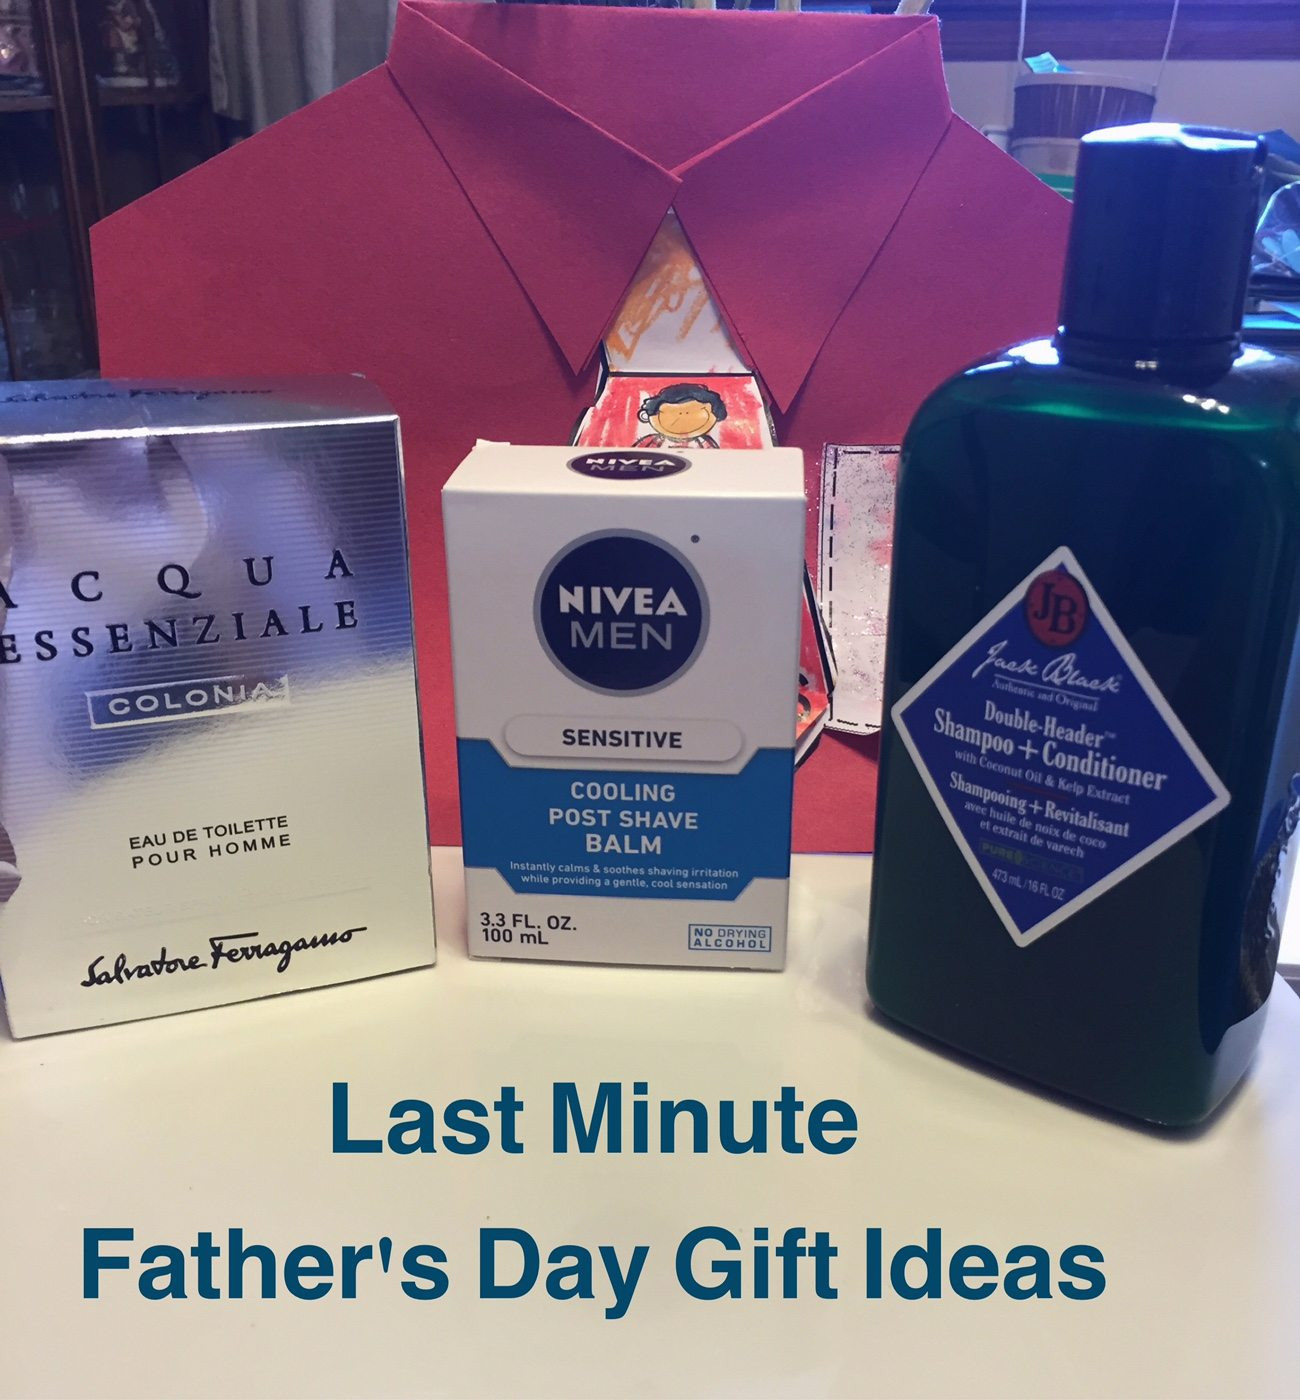 Best ideas about Last Minute Gift Ideas For Dad . Save or Pin Super Last Minute Gift Ideas for Dad Now.